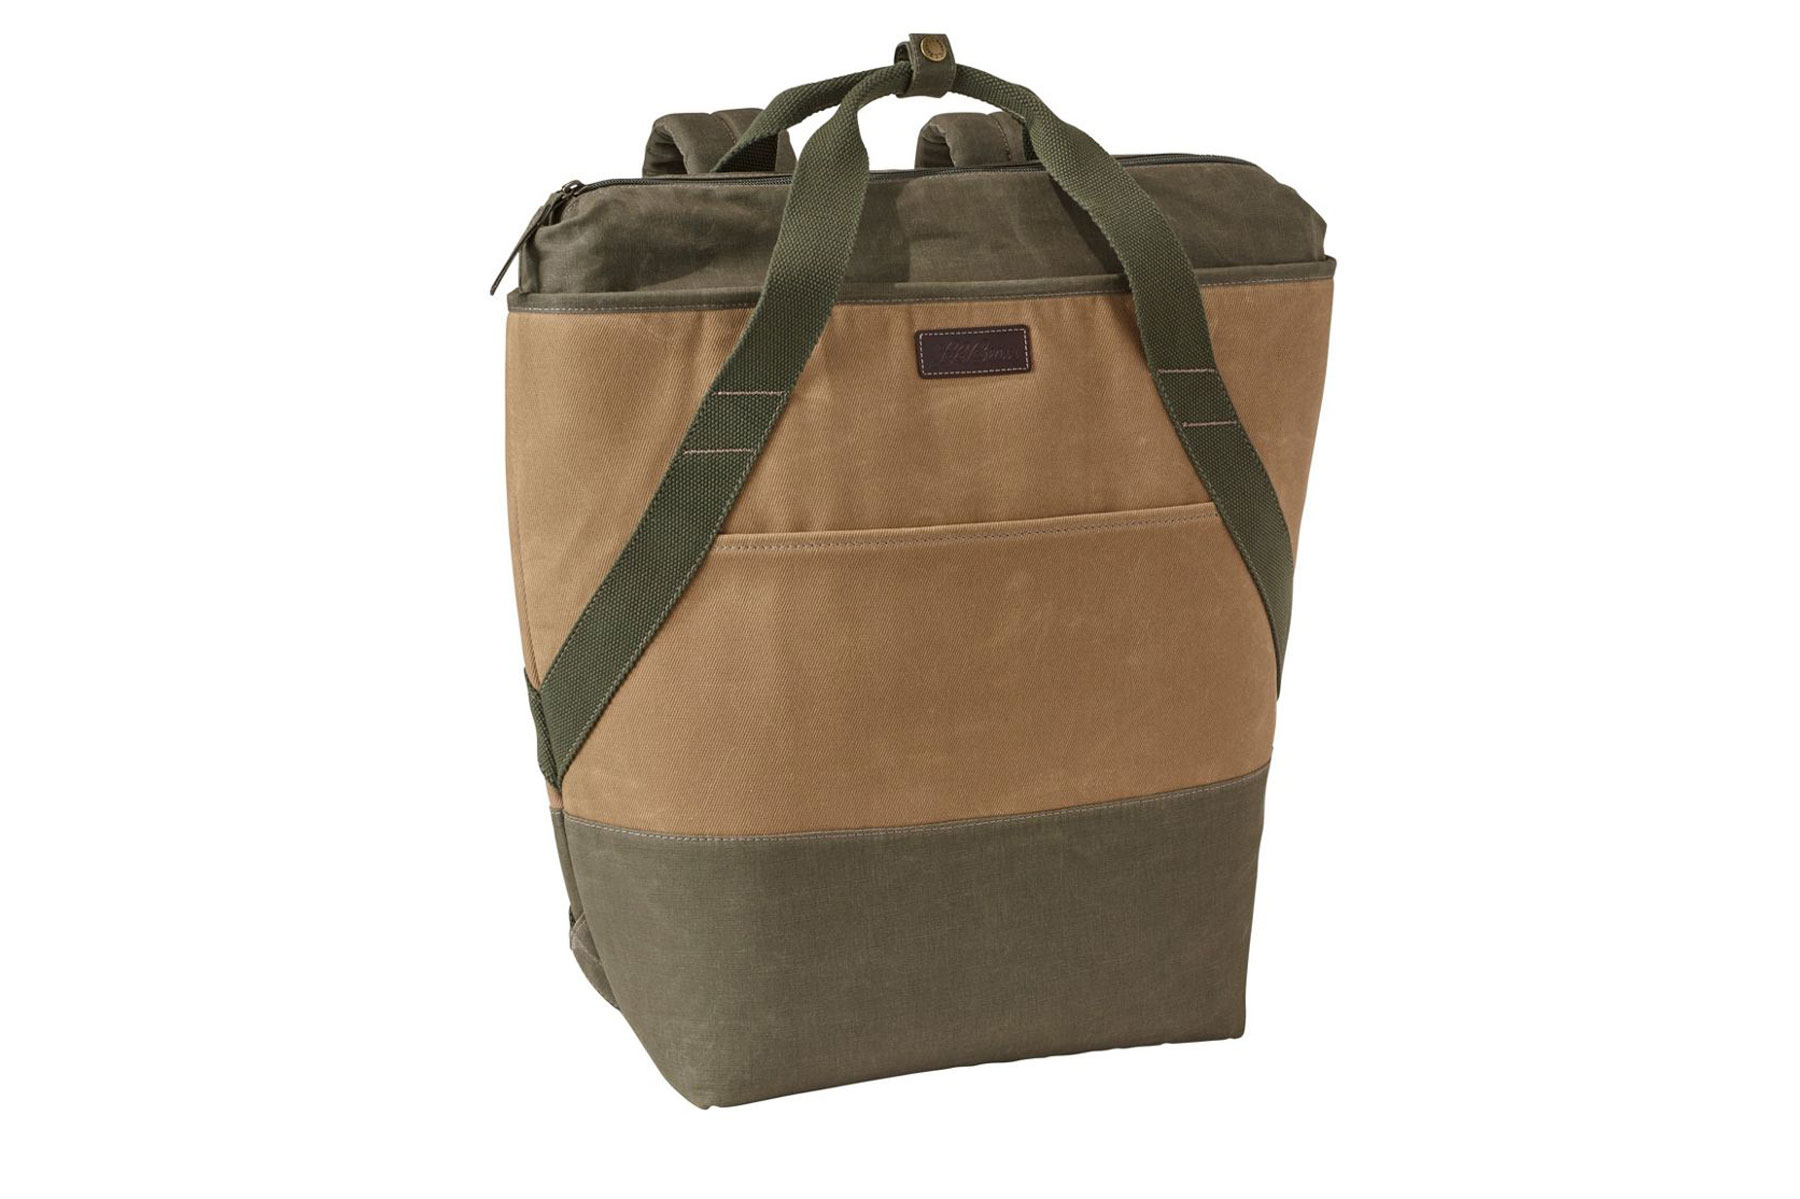 Tan and green canvas cooler backpack